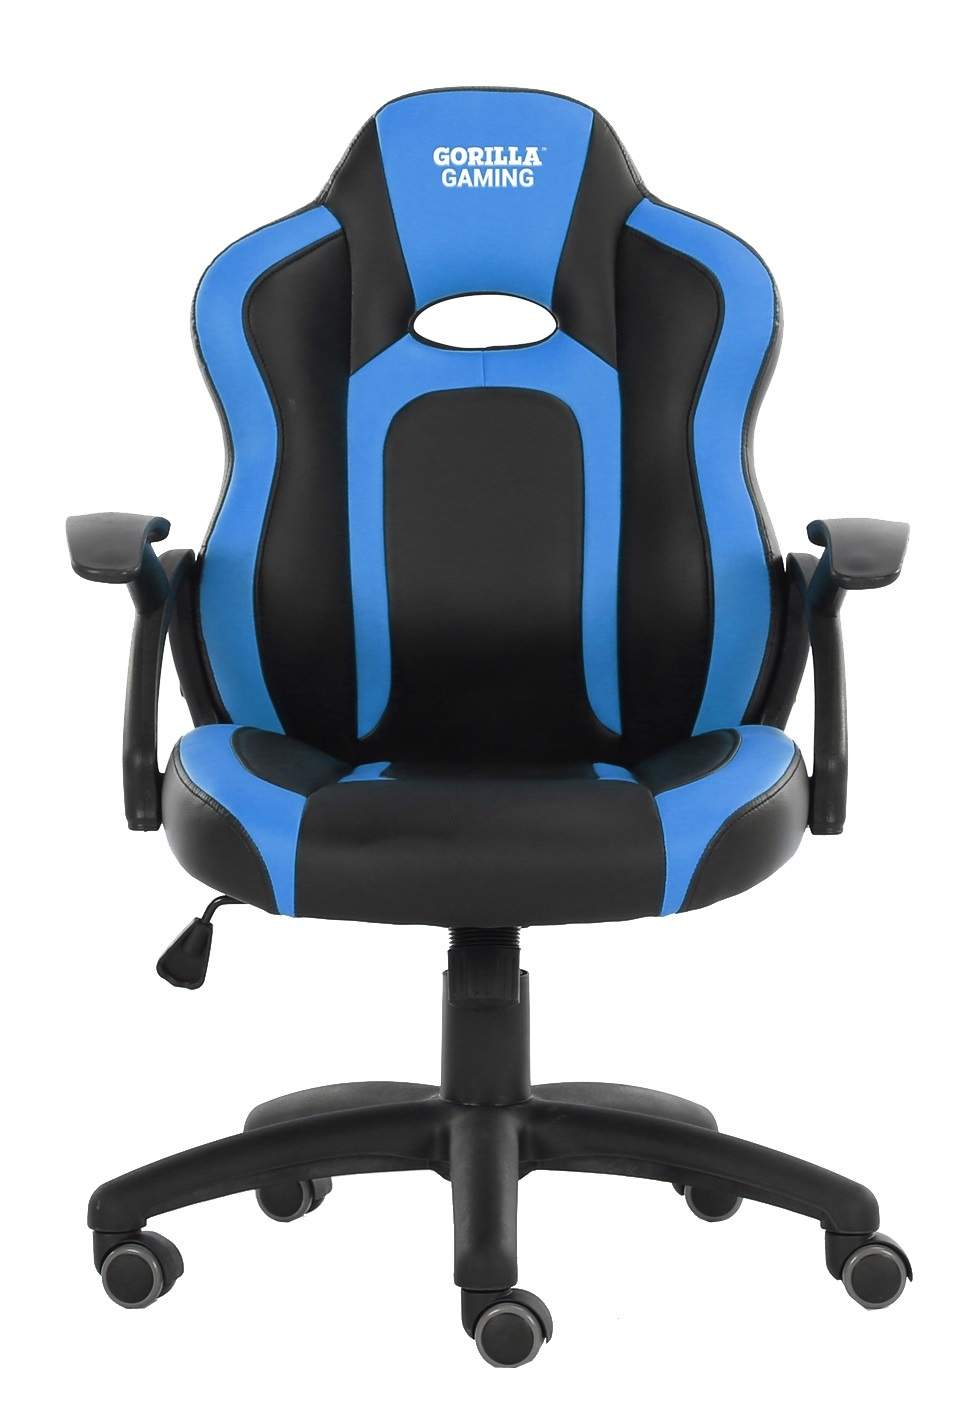 Gorilla Gaming Little Monkey Chair - Blue & Black for  image